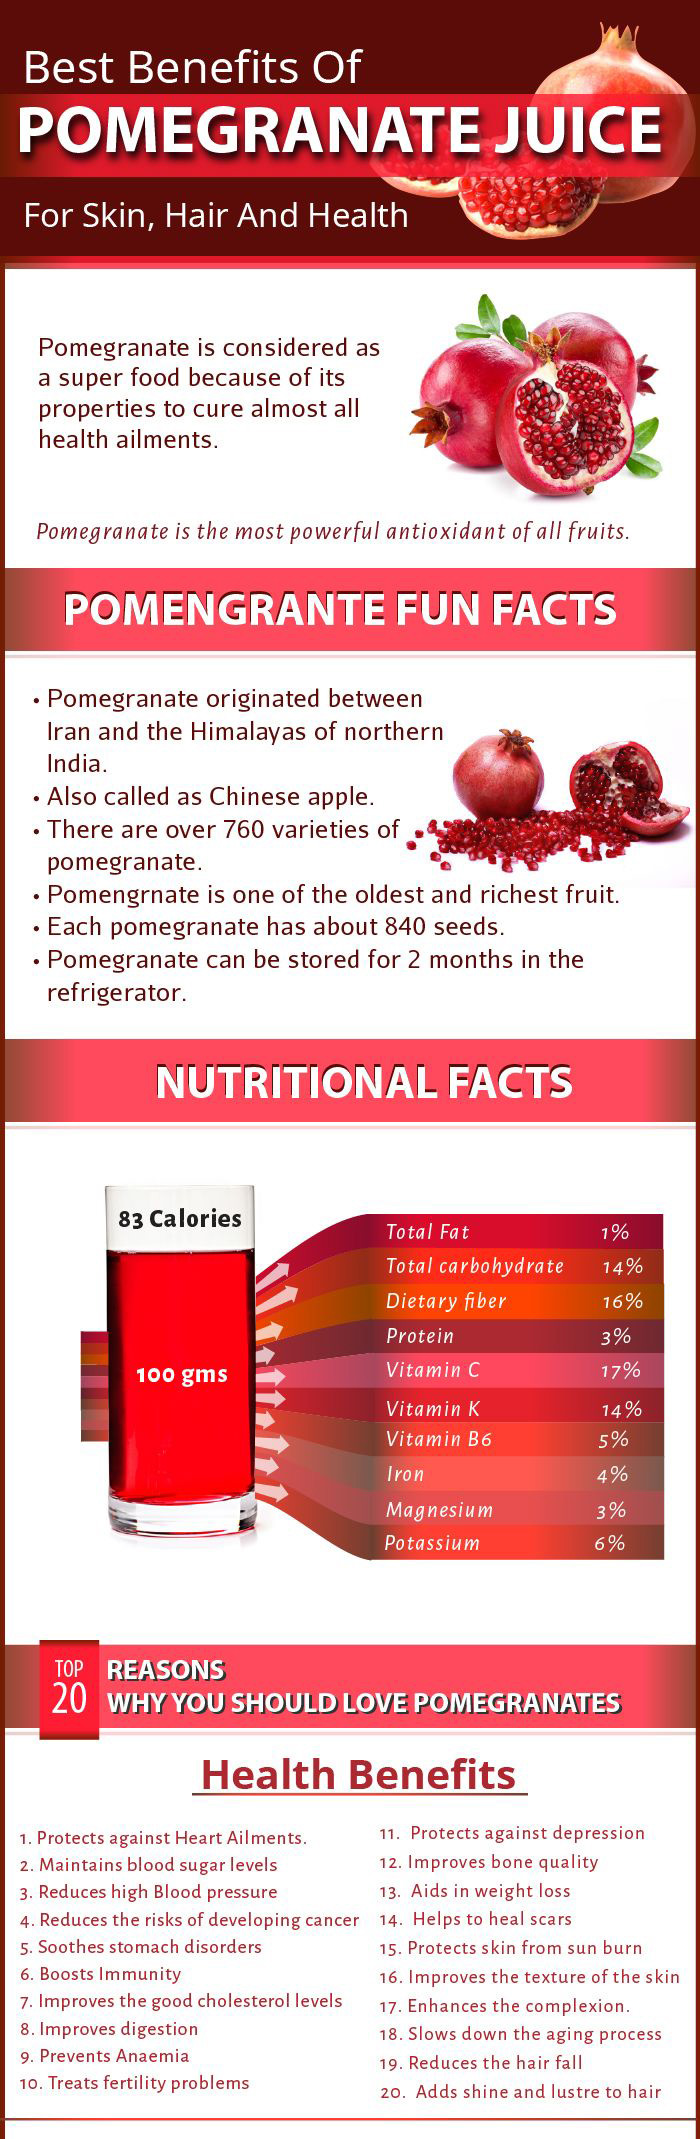 Why Your Skin, Hair and Health Should Worship Pomegranates - Infographic